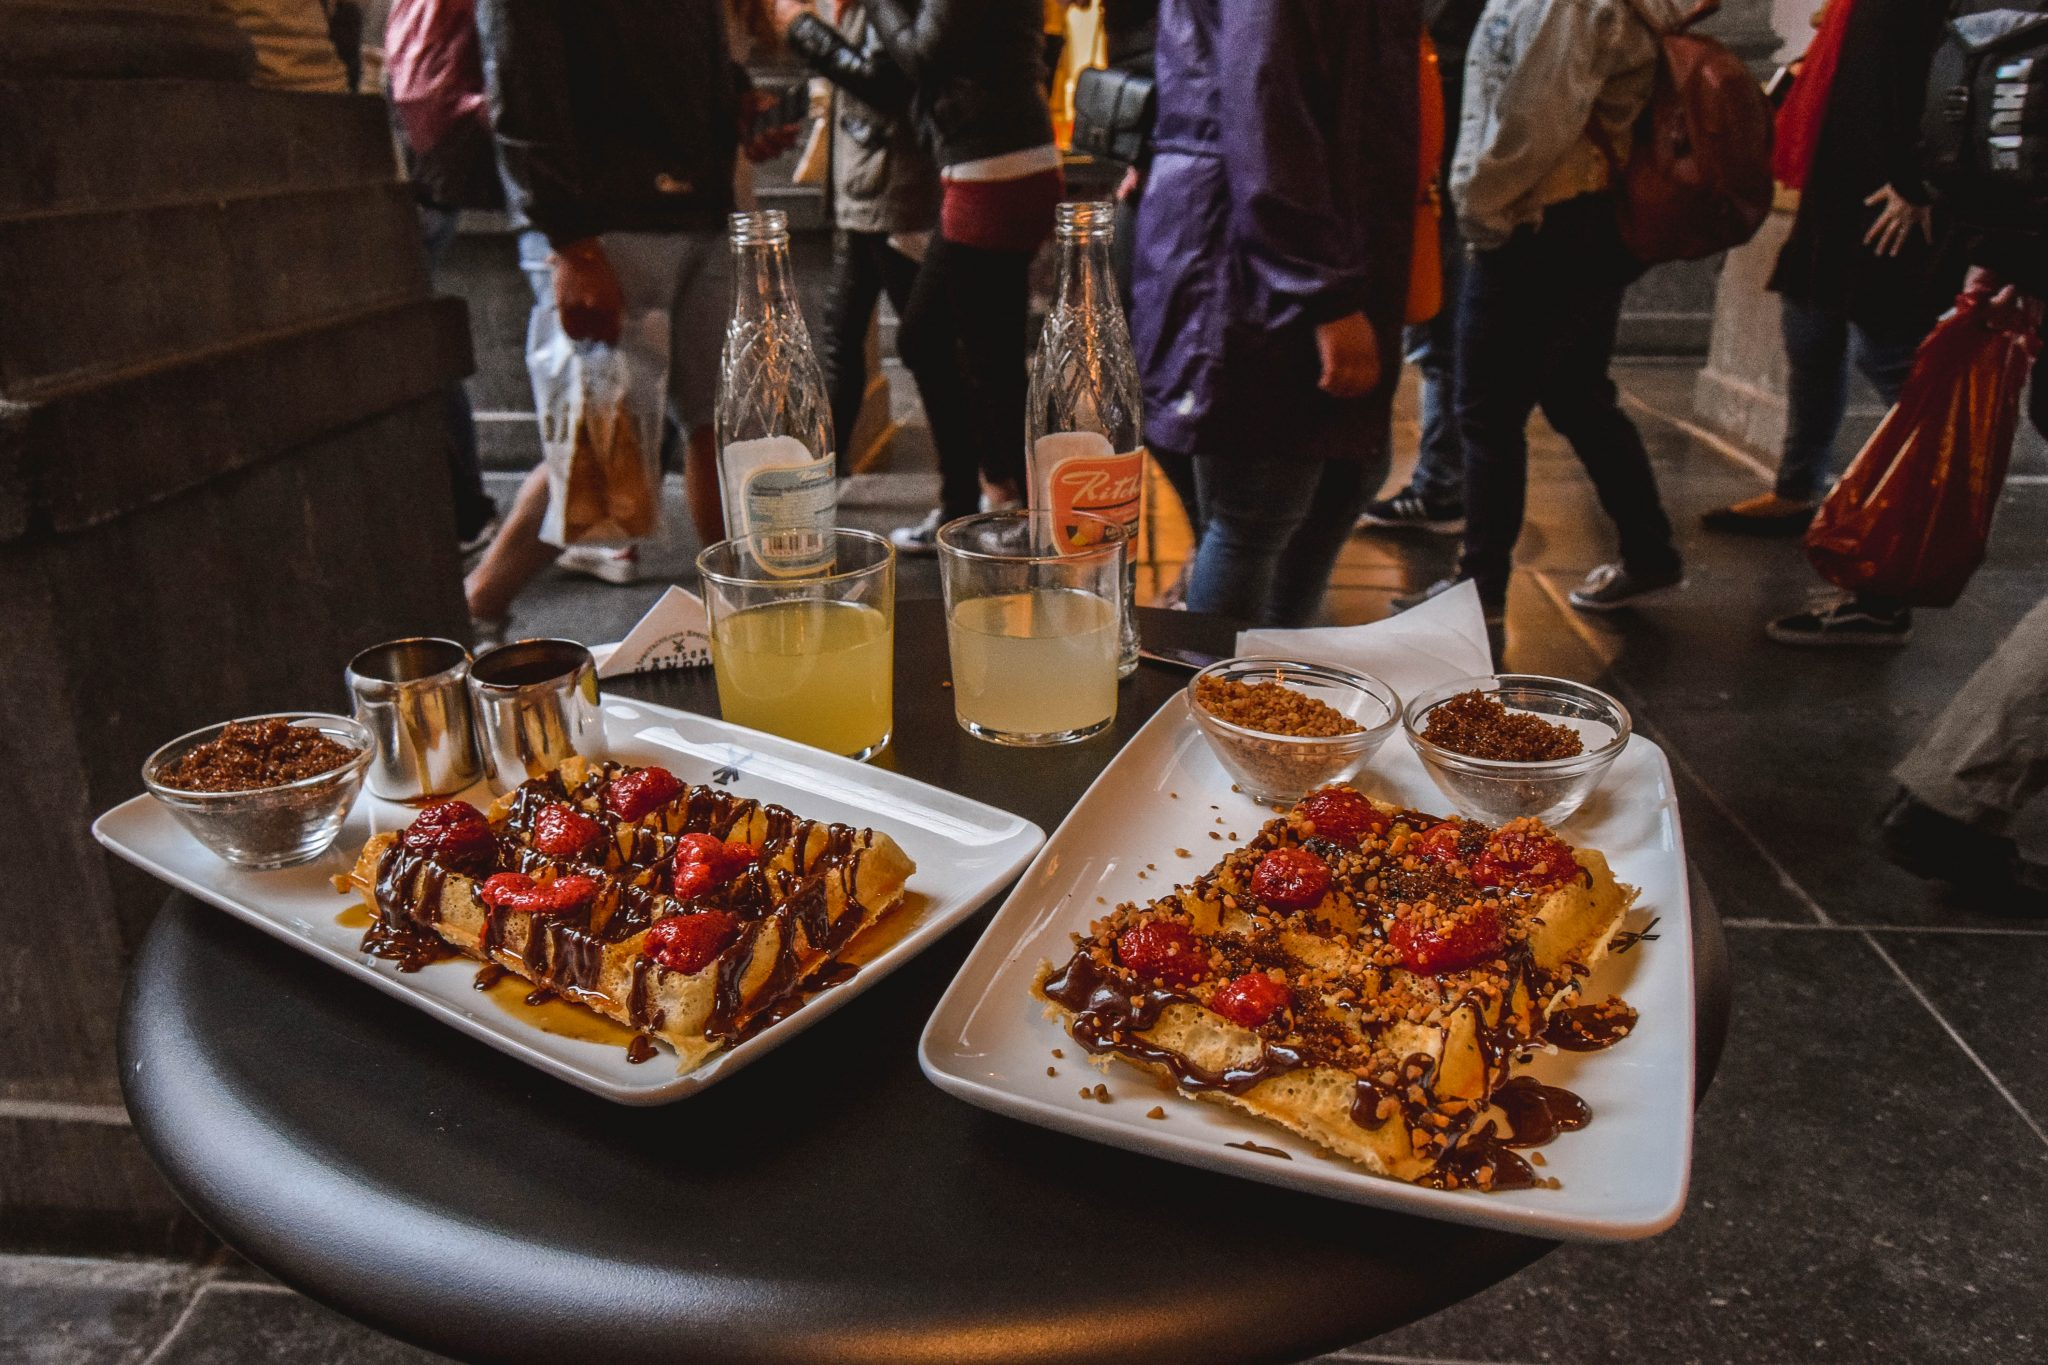 Wanderers & Warriors - Things To Do In Brussels In A Weekend - Maison Dandoy Brussels Waffles Belgium